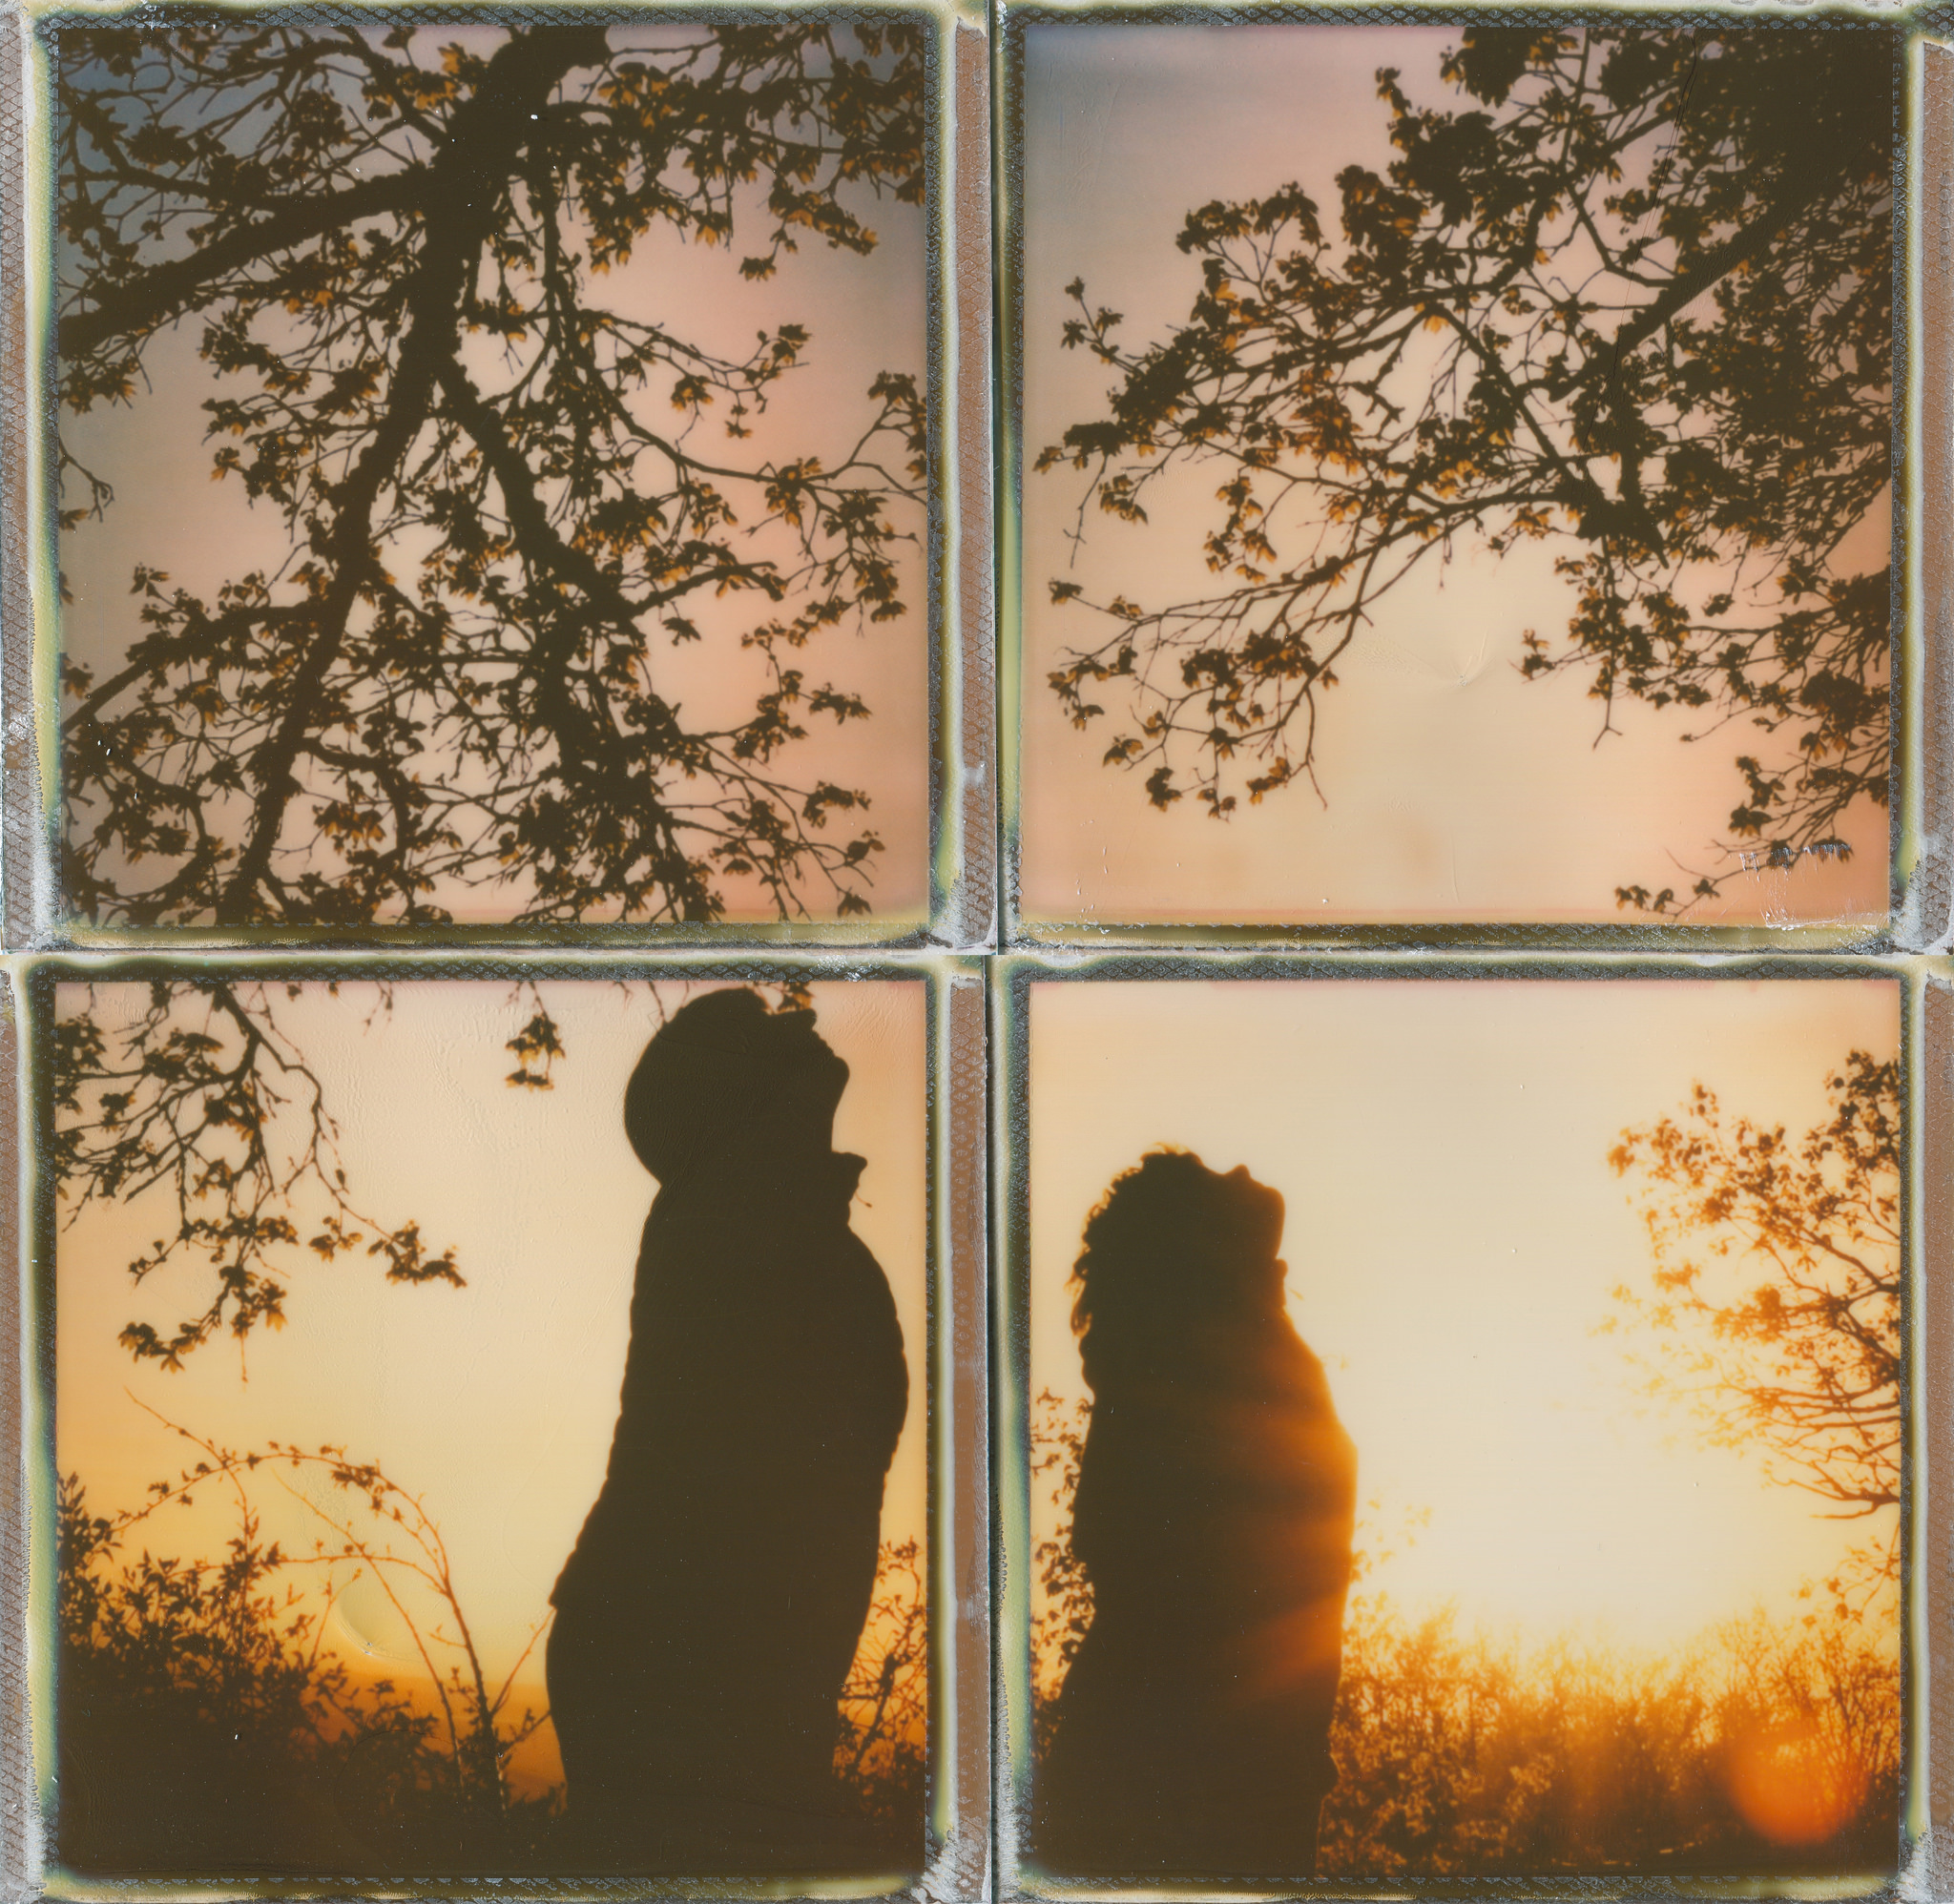 Photo information: Film type: Type 600. Film manufacturer: impossible project . Film name: pioneer color 600 film gen2 . Alias: .